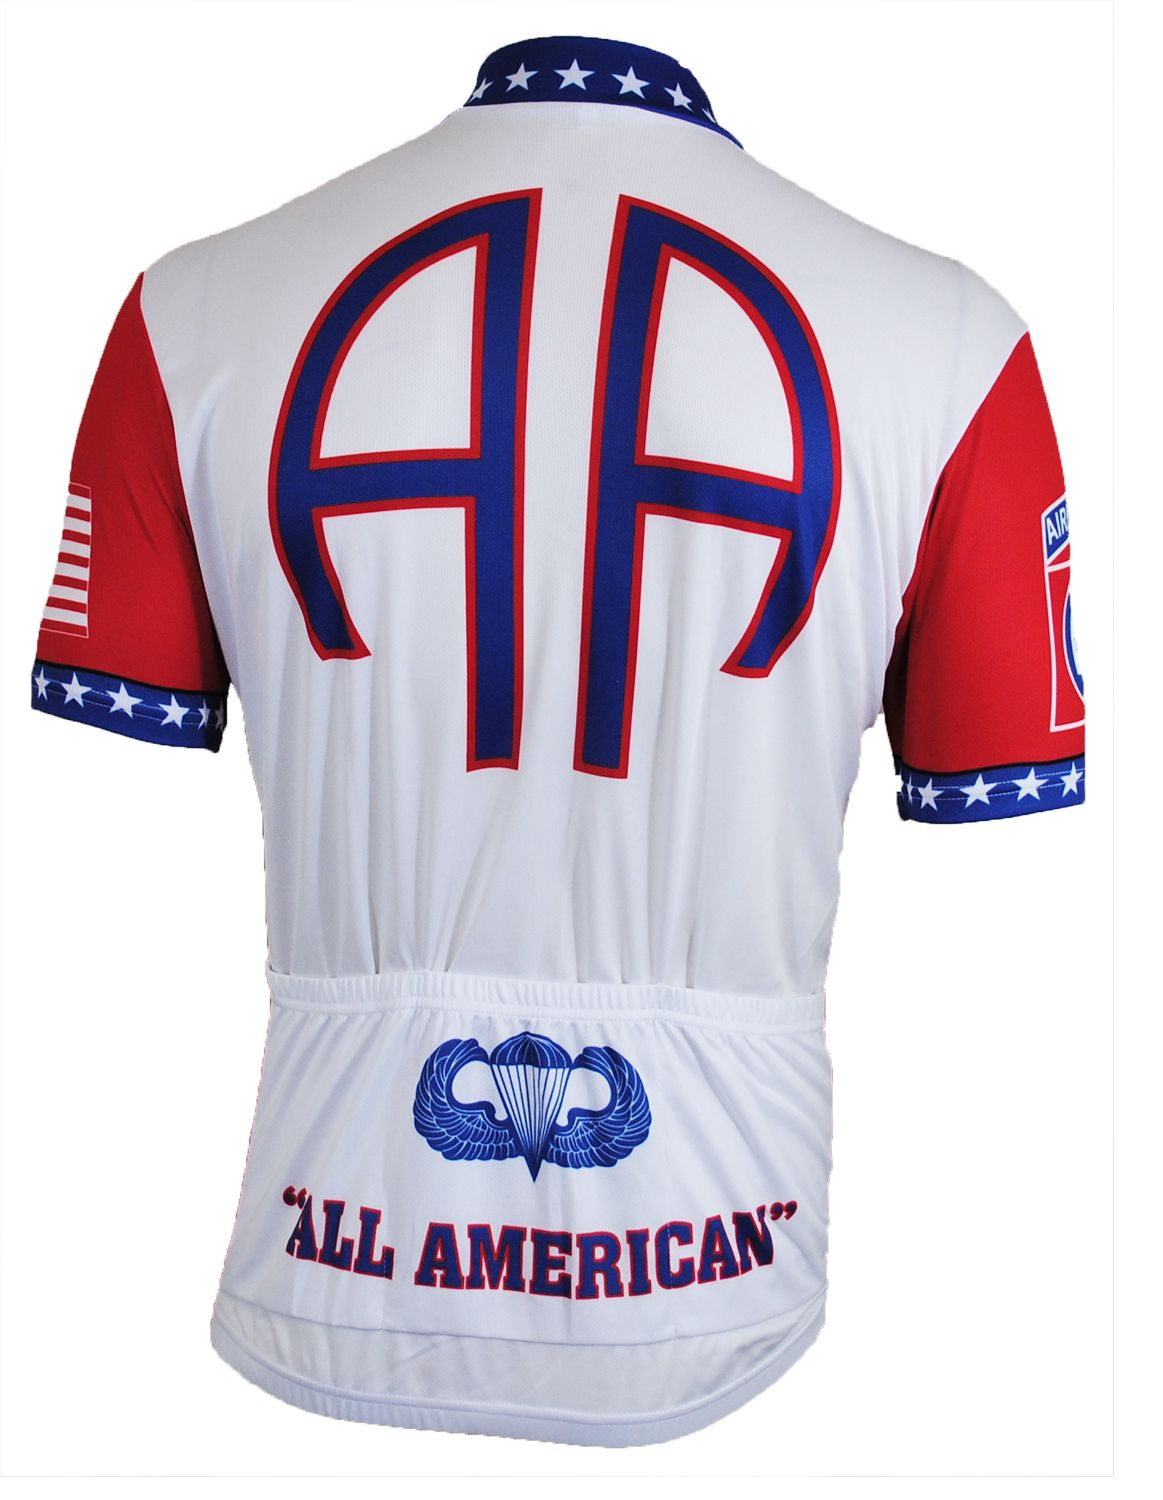 20f649ba1 82nd Airborne Cycling Jersey - Back View - FREE SHIPPING - http   www